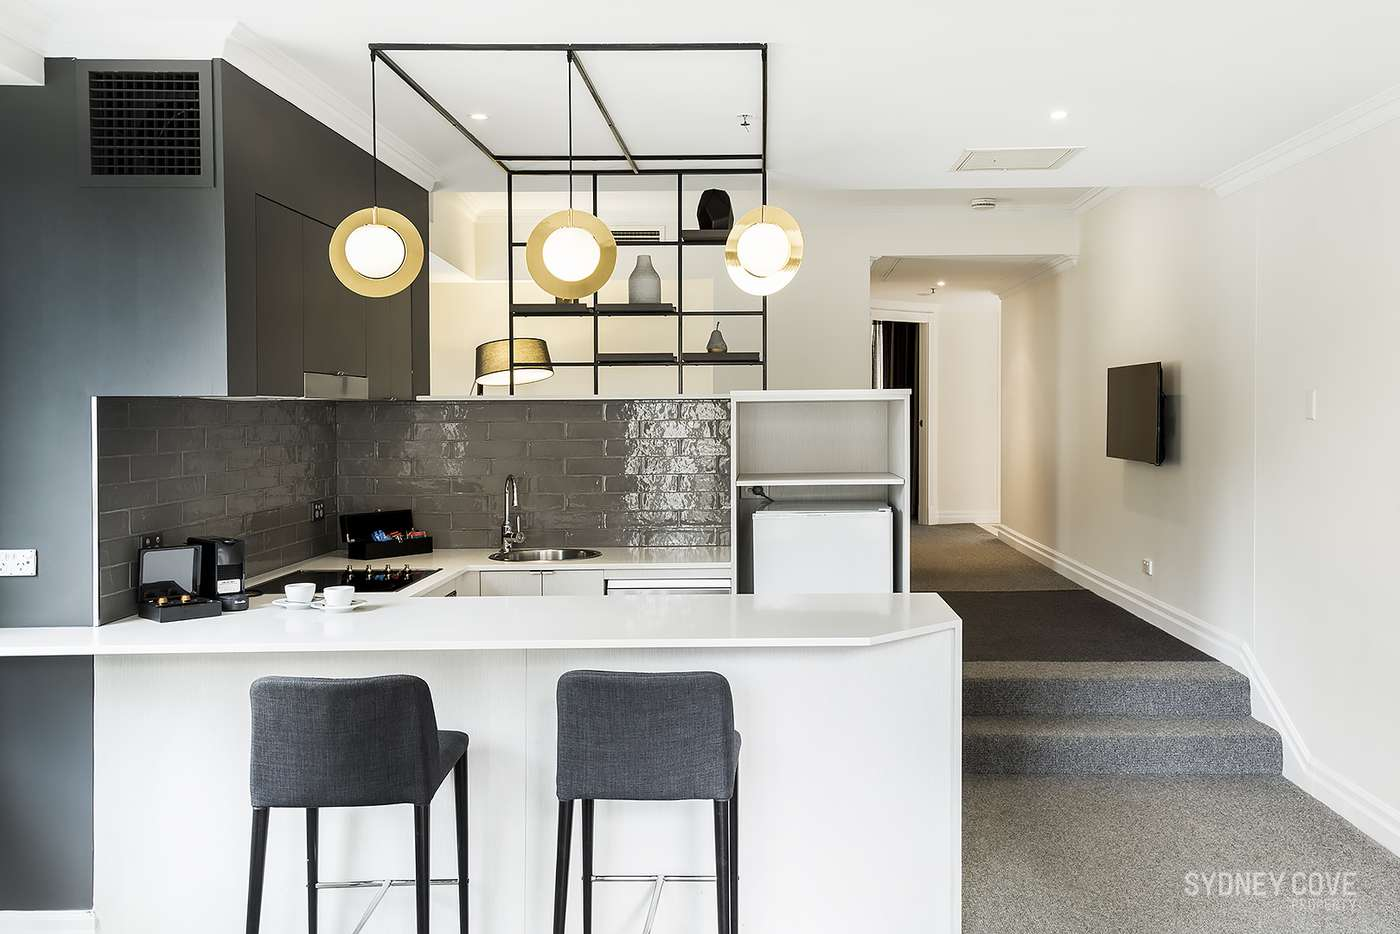 Fifth view of Homely apartment listing, 2 Bond Street, Sydney NSW 2000